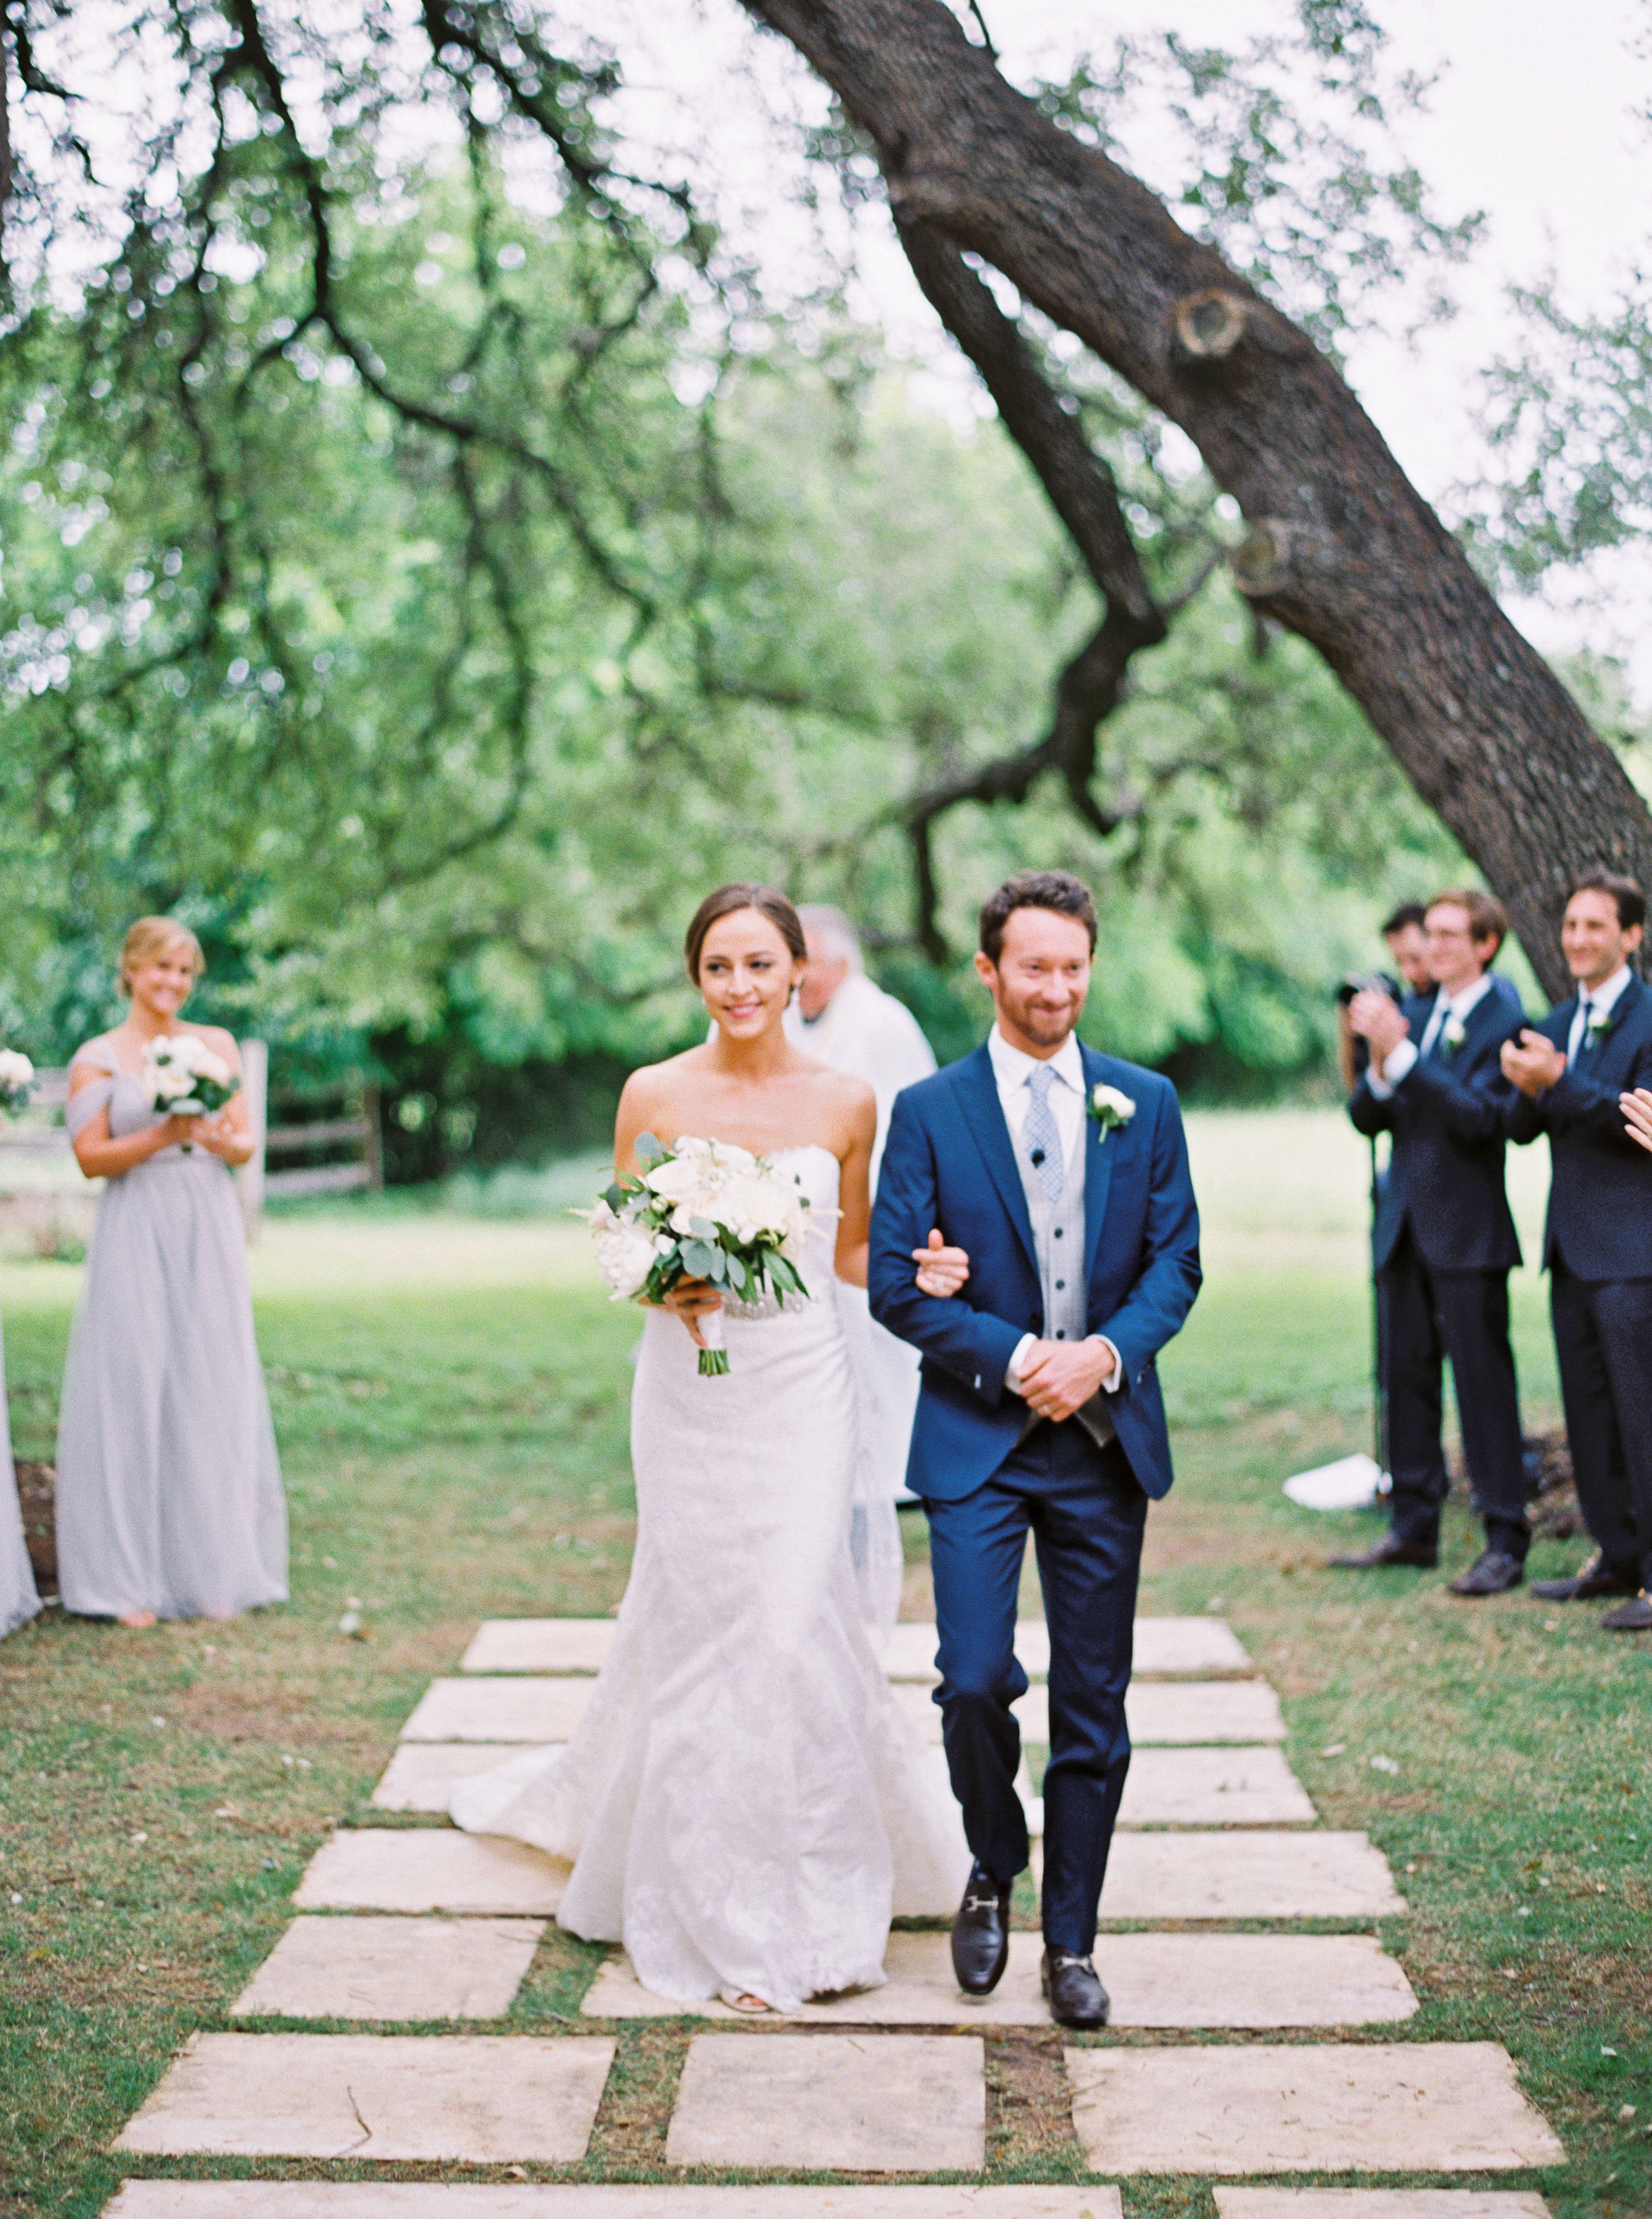 spring wedding recessional bride and groom